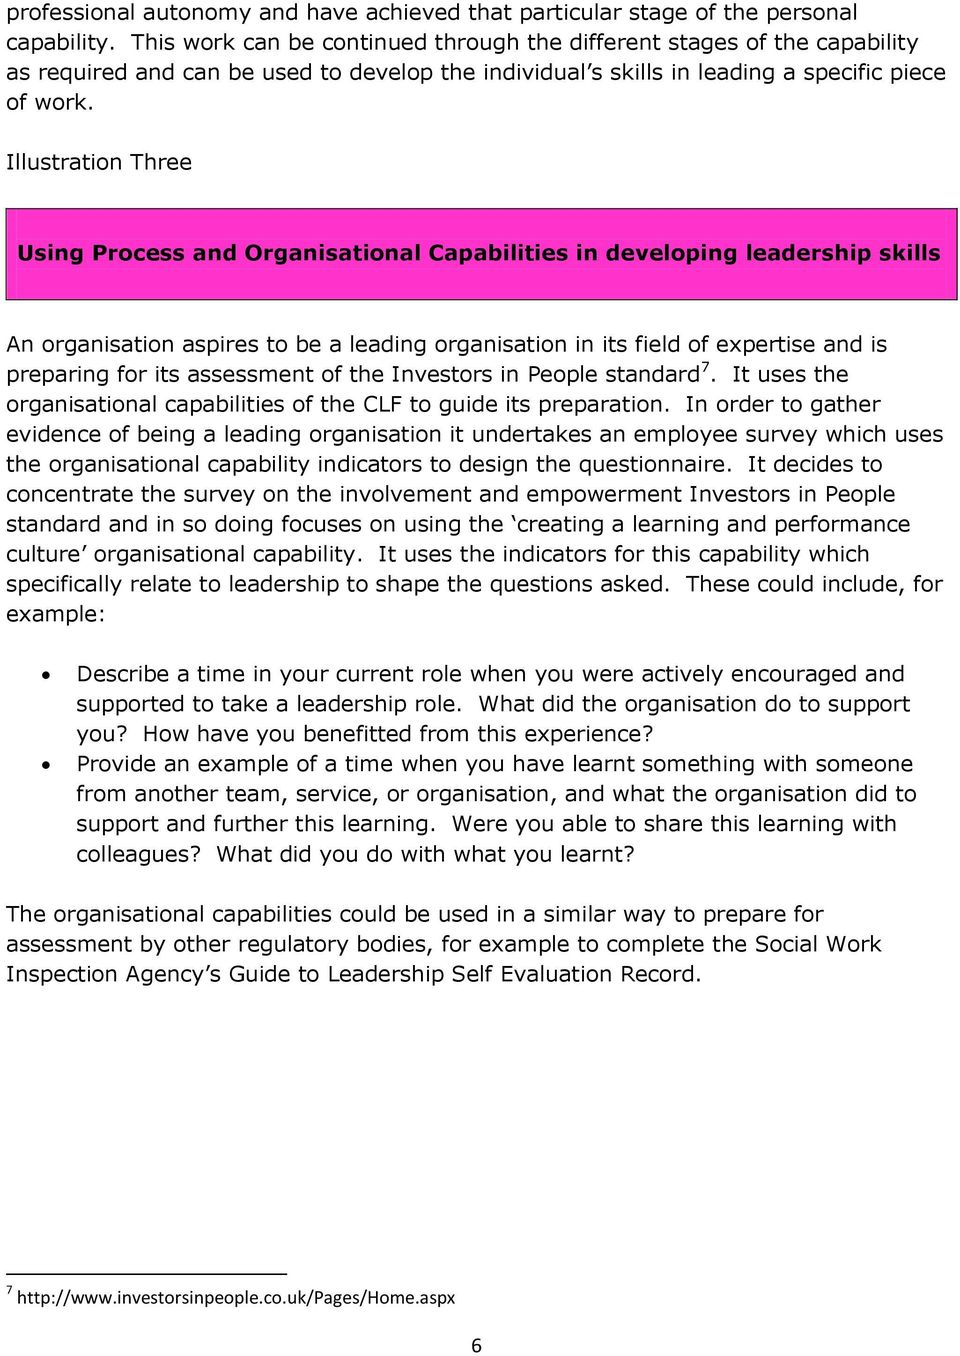 Illustration Three Using Process and Organisational Capabilities in developing leadership skills An organisation aspires to be a leading organisation in its field of expertise and is preparing for